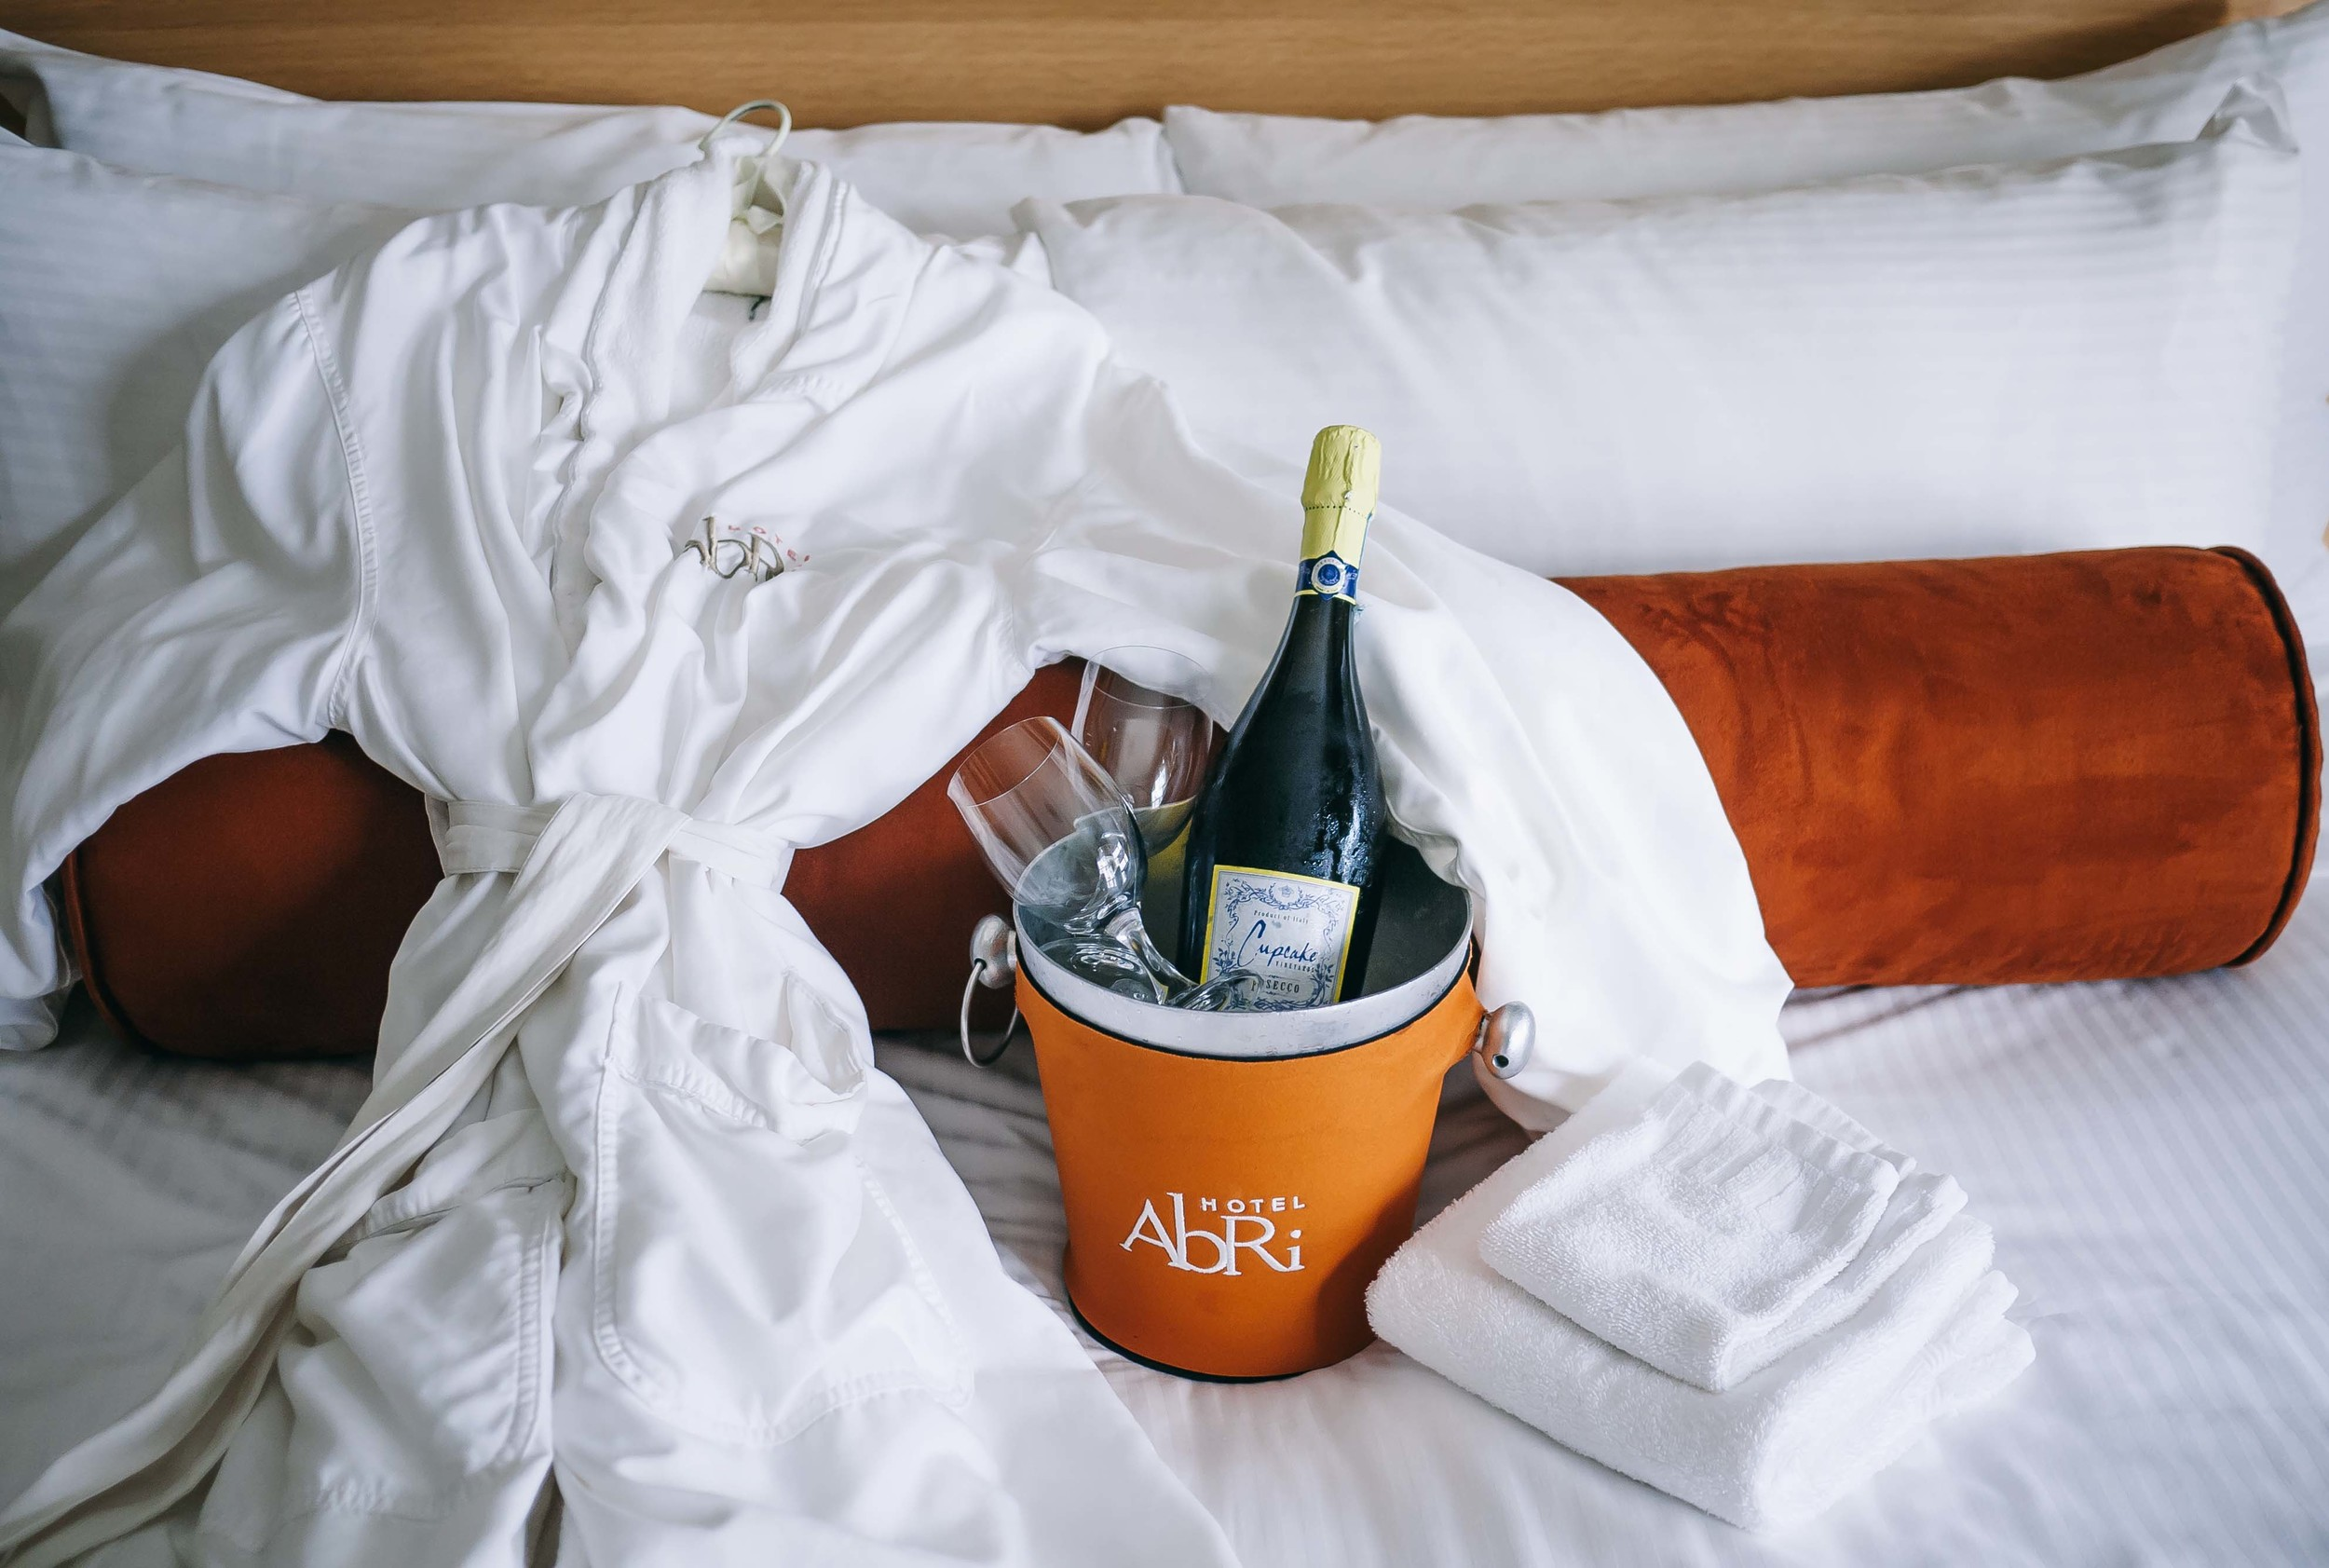 Nothing like kicking-off a Labor-Less Weekend stay with bubbly in a bathrobe.